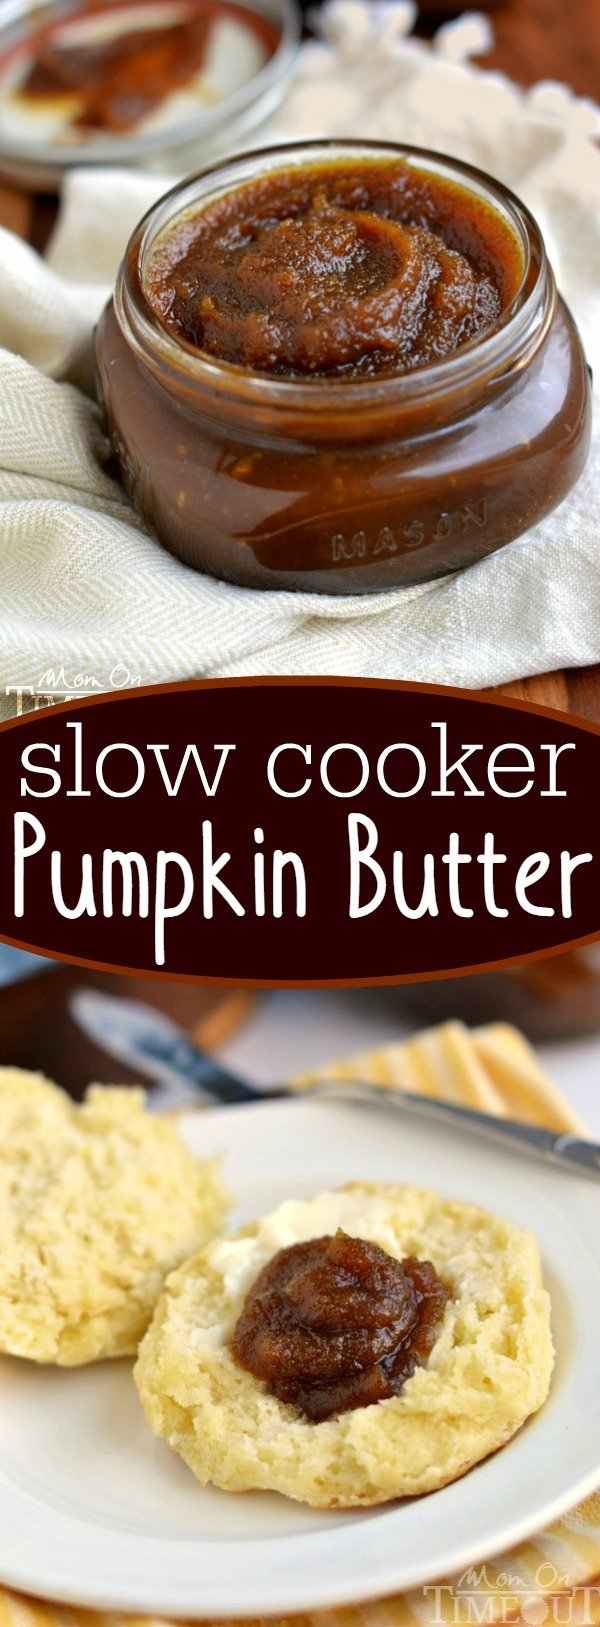 slow-cooker-pumpkin-butter-recipe